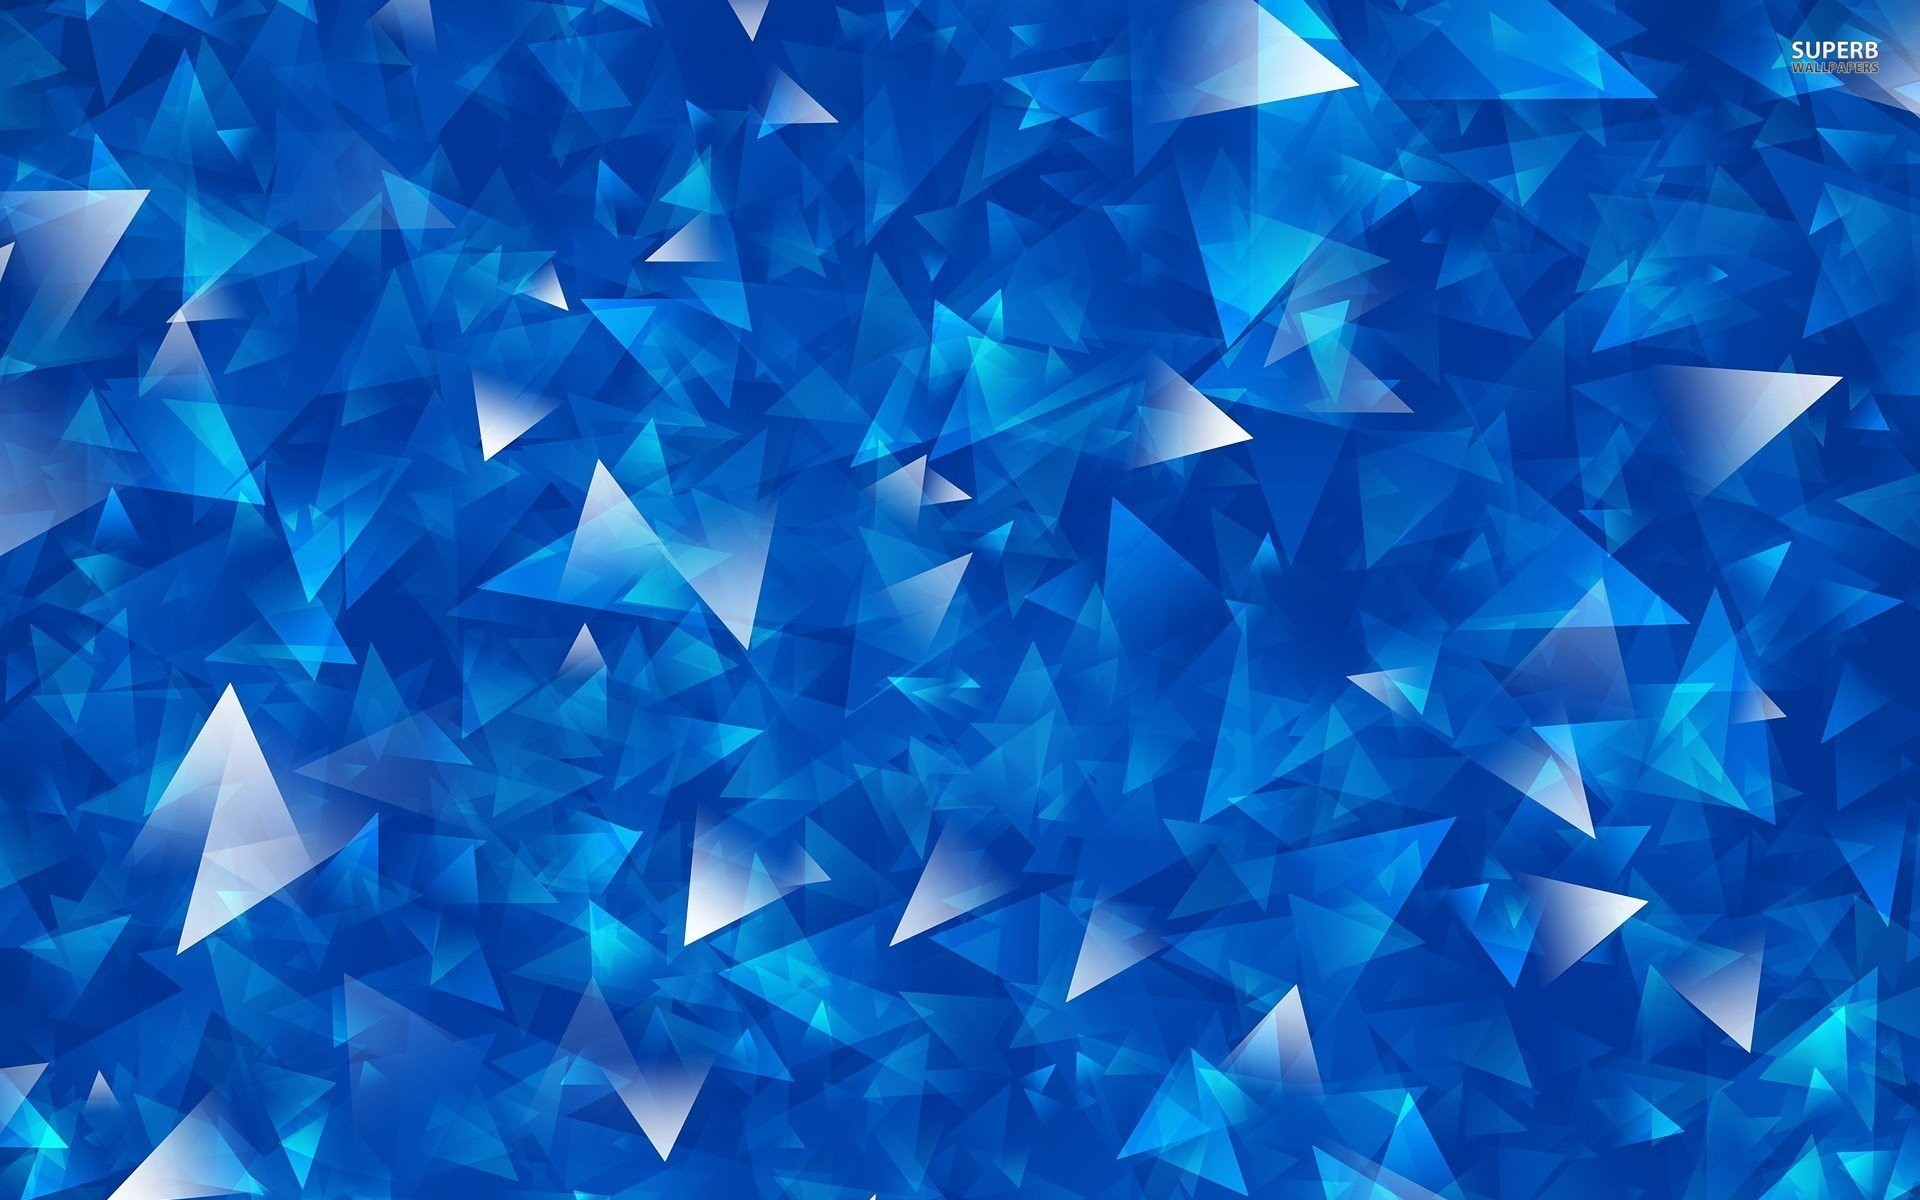 blue and silver wallpaper 50 images